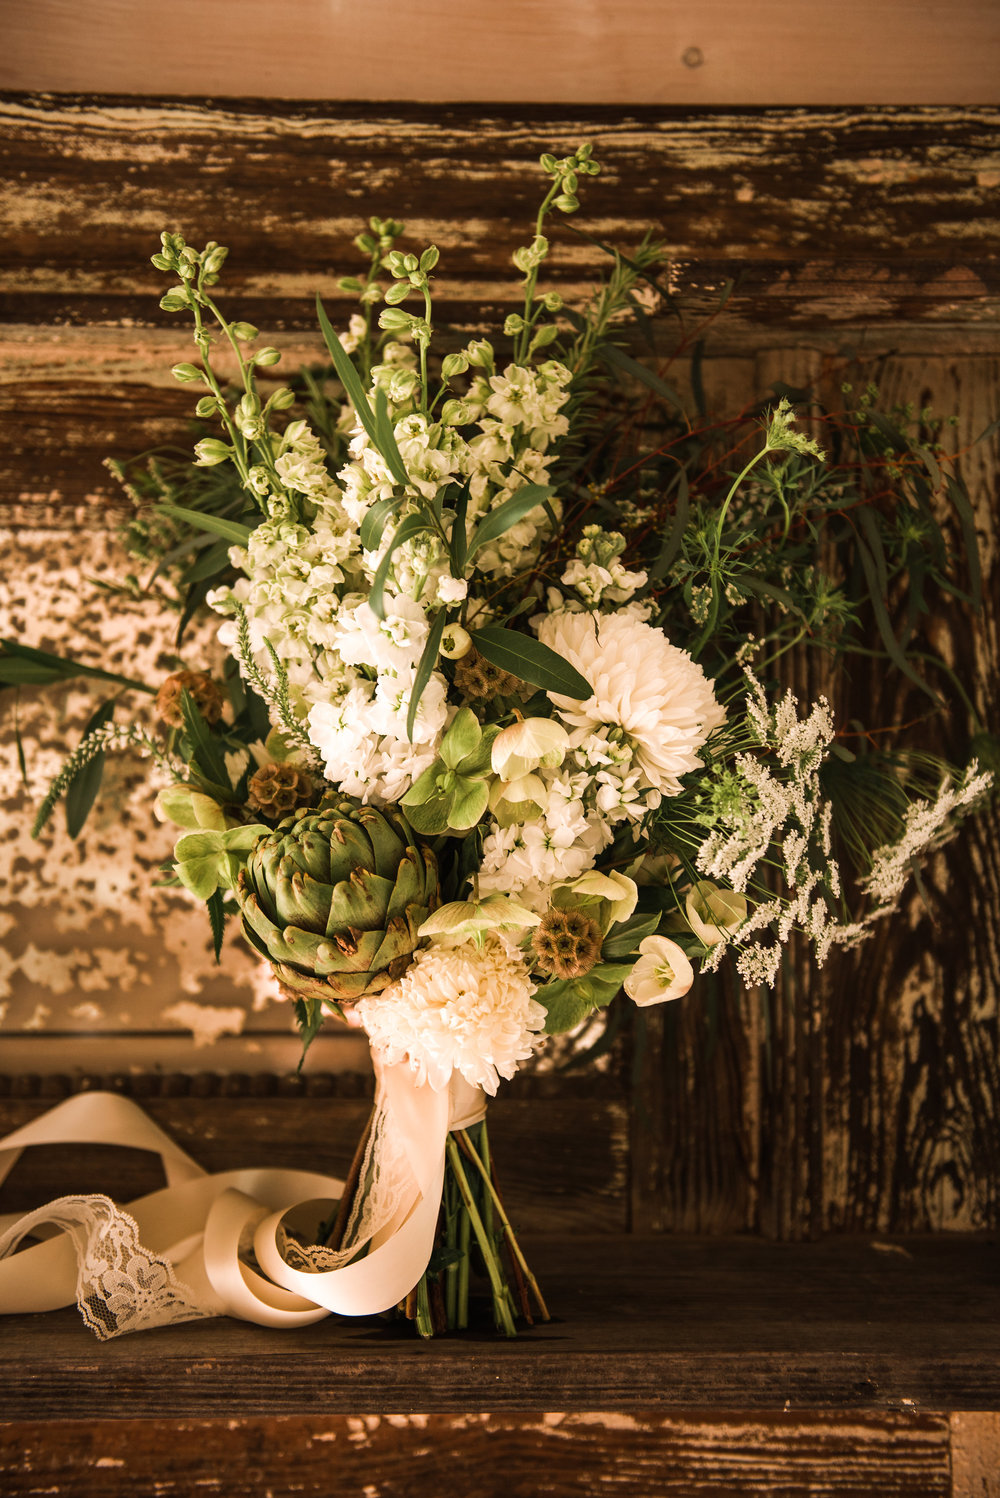 A Green and White Boho Wedding. A unique green and white loose wildflower bouquet with artichoke focal. | Flowers by Flower Buds | Photograph by Heart and Oak Photography | Venue The Ruins at Kellum Valley Farm